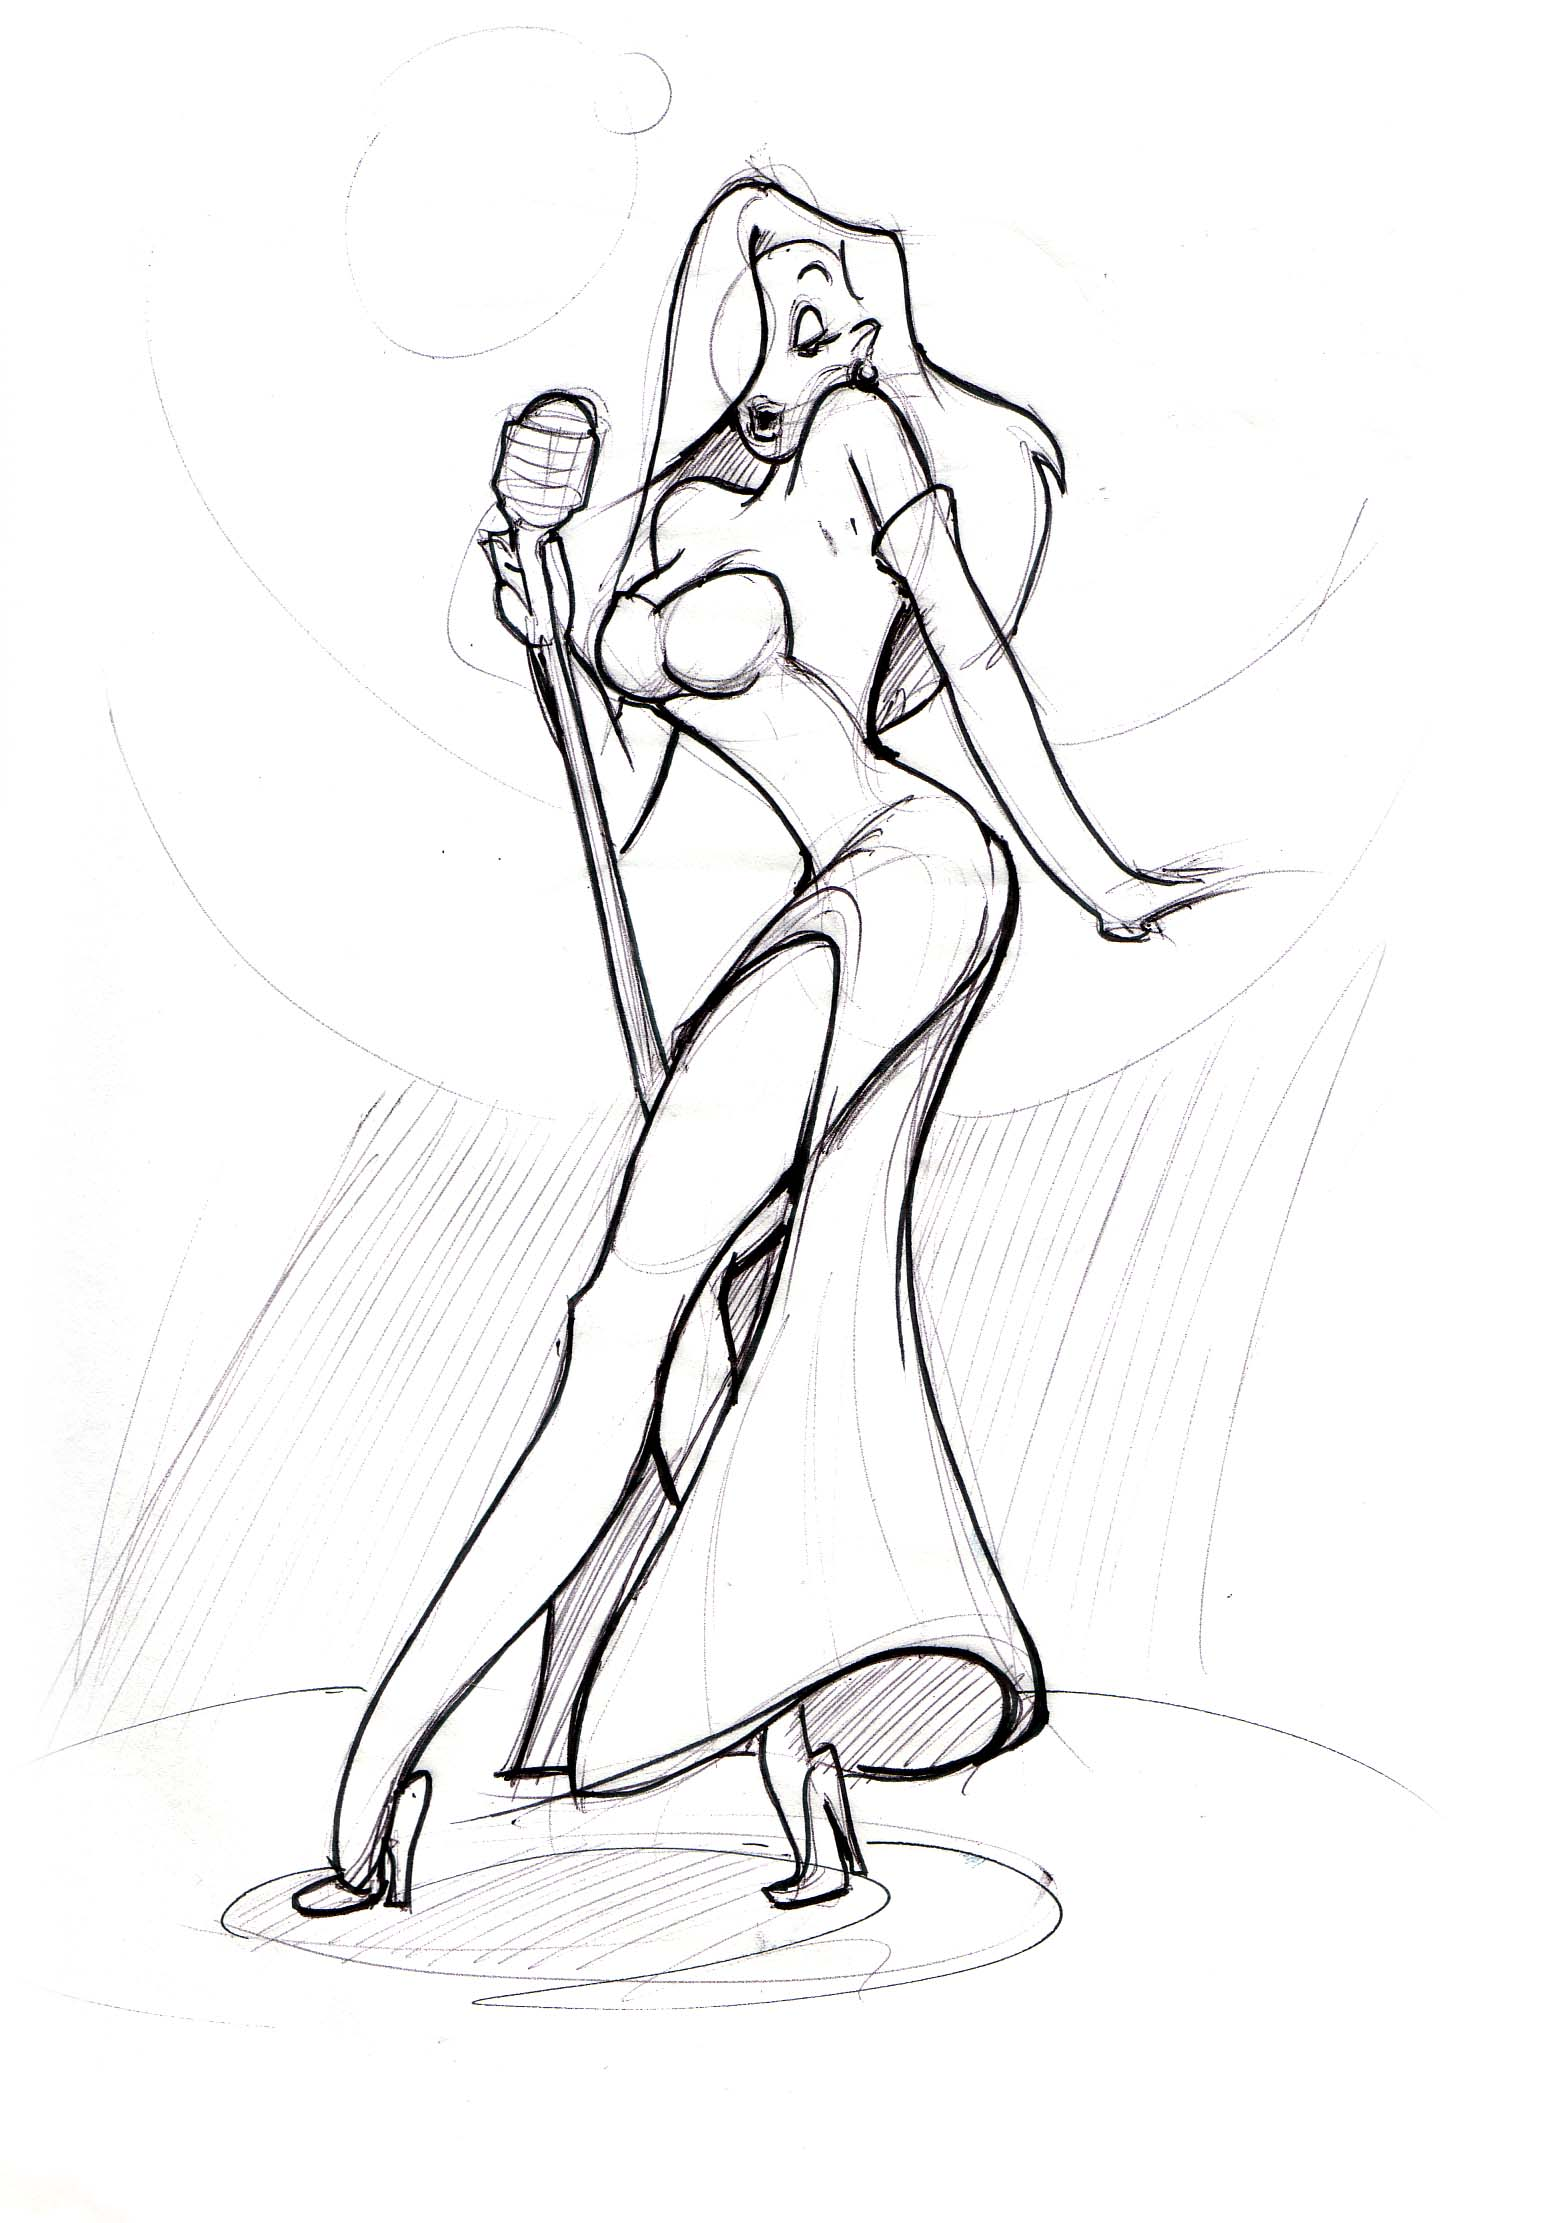 Drawn rabbit jessica rabbit Lineweights rabbit_1 Jessica jessica Rabbit!